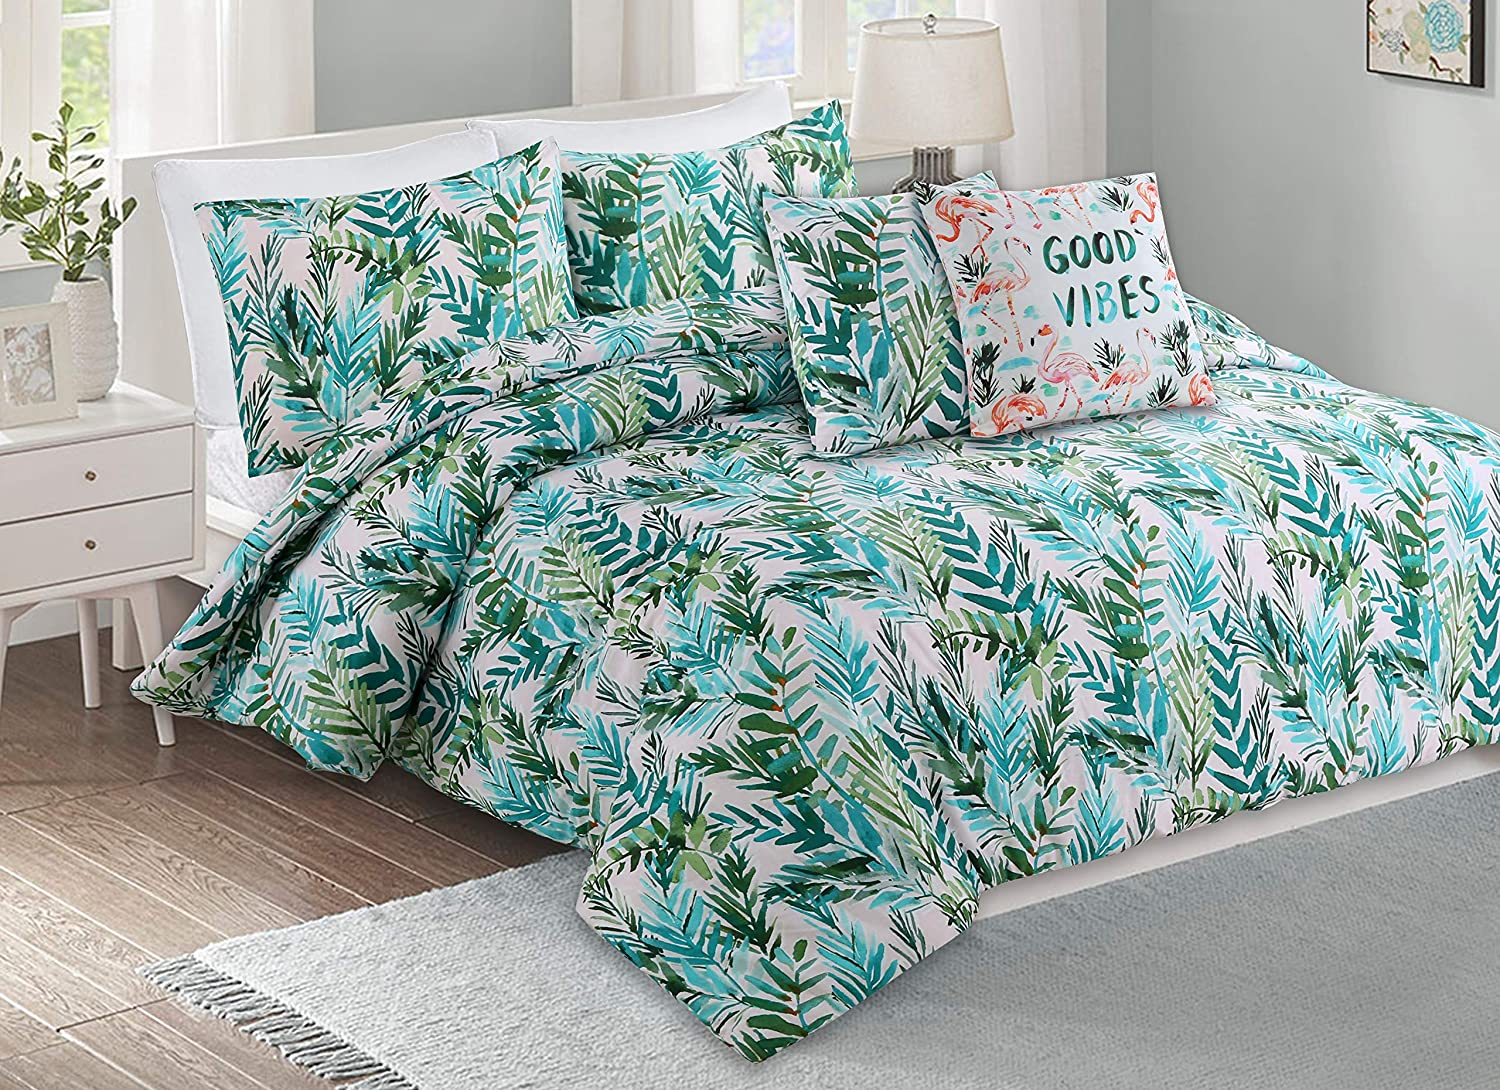 BARBARIAN by Barbra Ignatiev Sunset Palm Printed 2, 3 Pieces Comforter Set (Full/Queen)